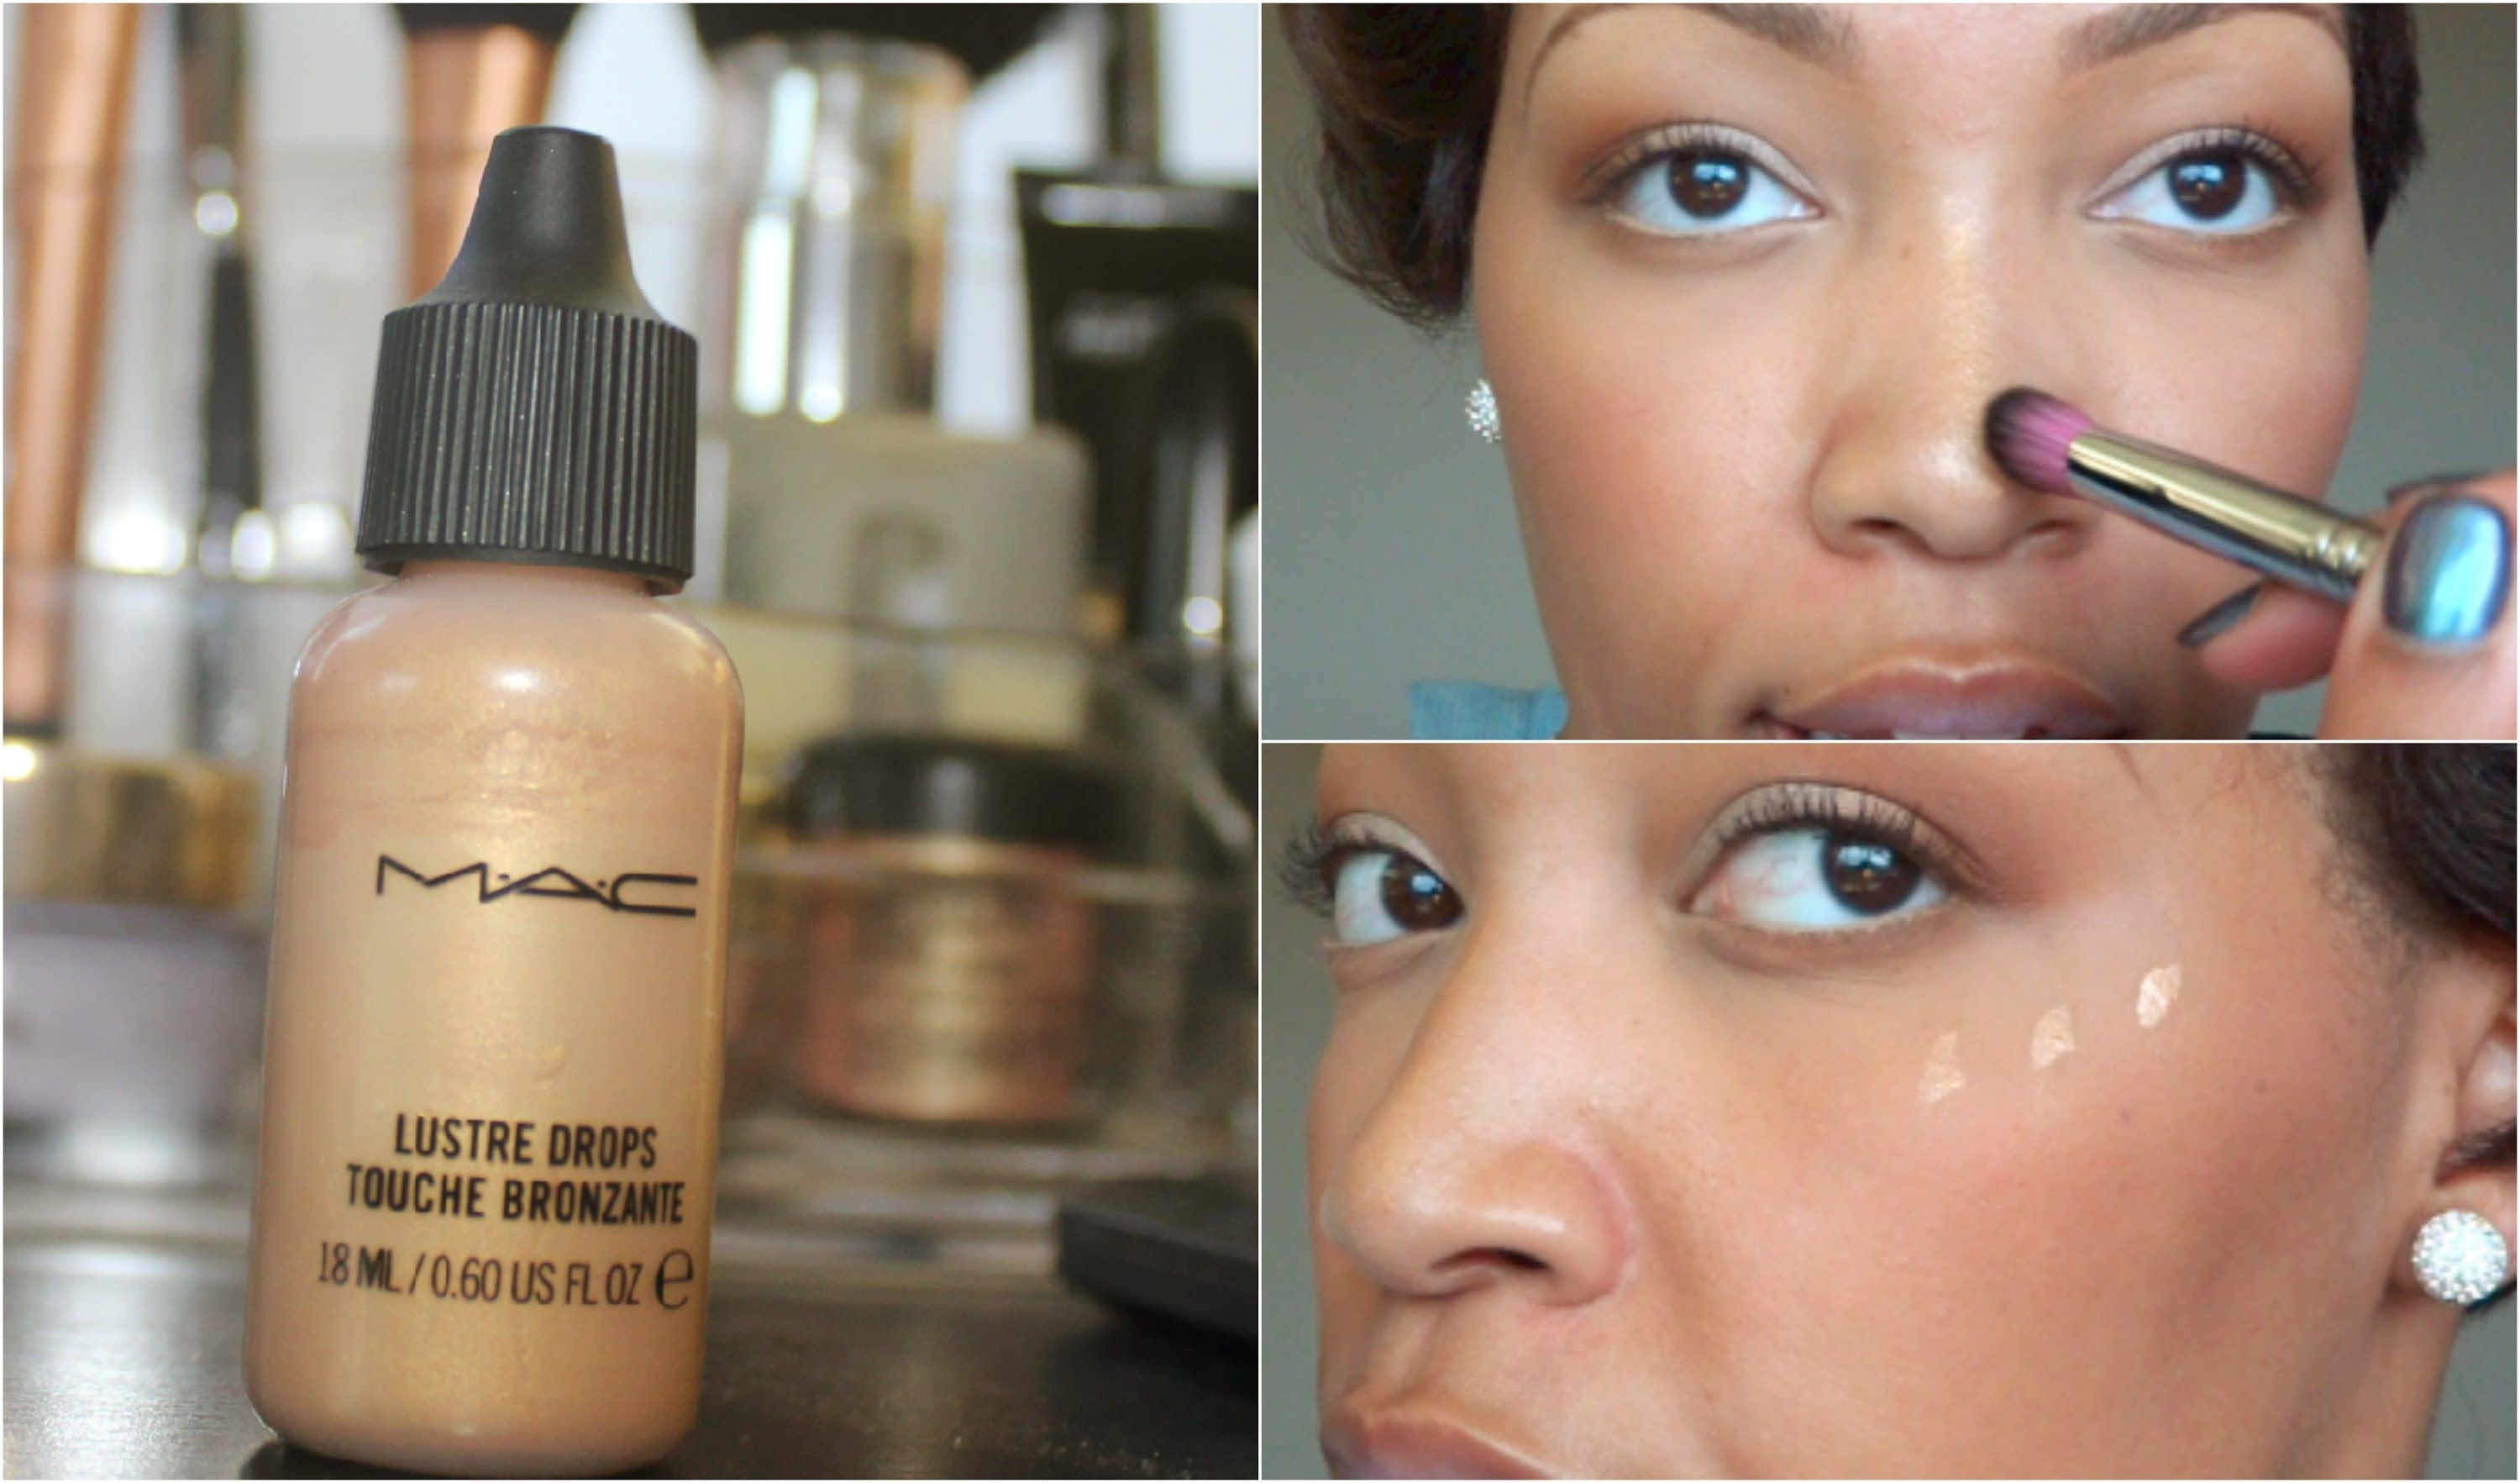 How to use mac lustre drops in 2 minutes tutorial sun rush how to use mac lustre drops in 2 minutes tutorial baditri Gallery